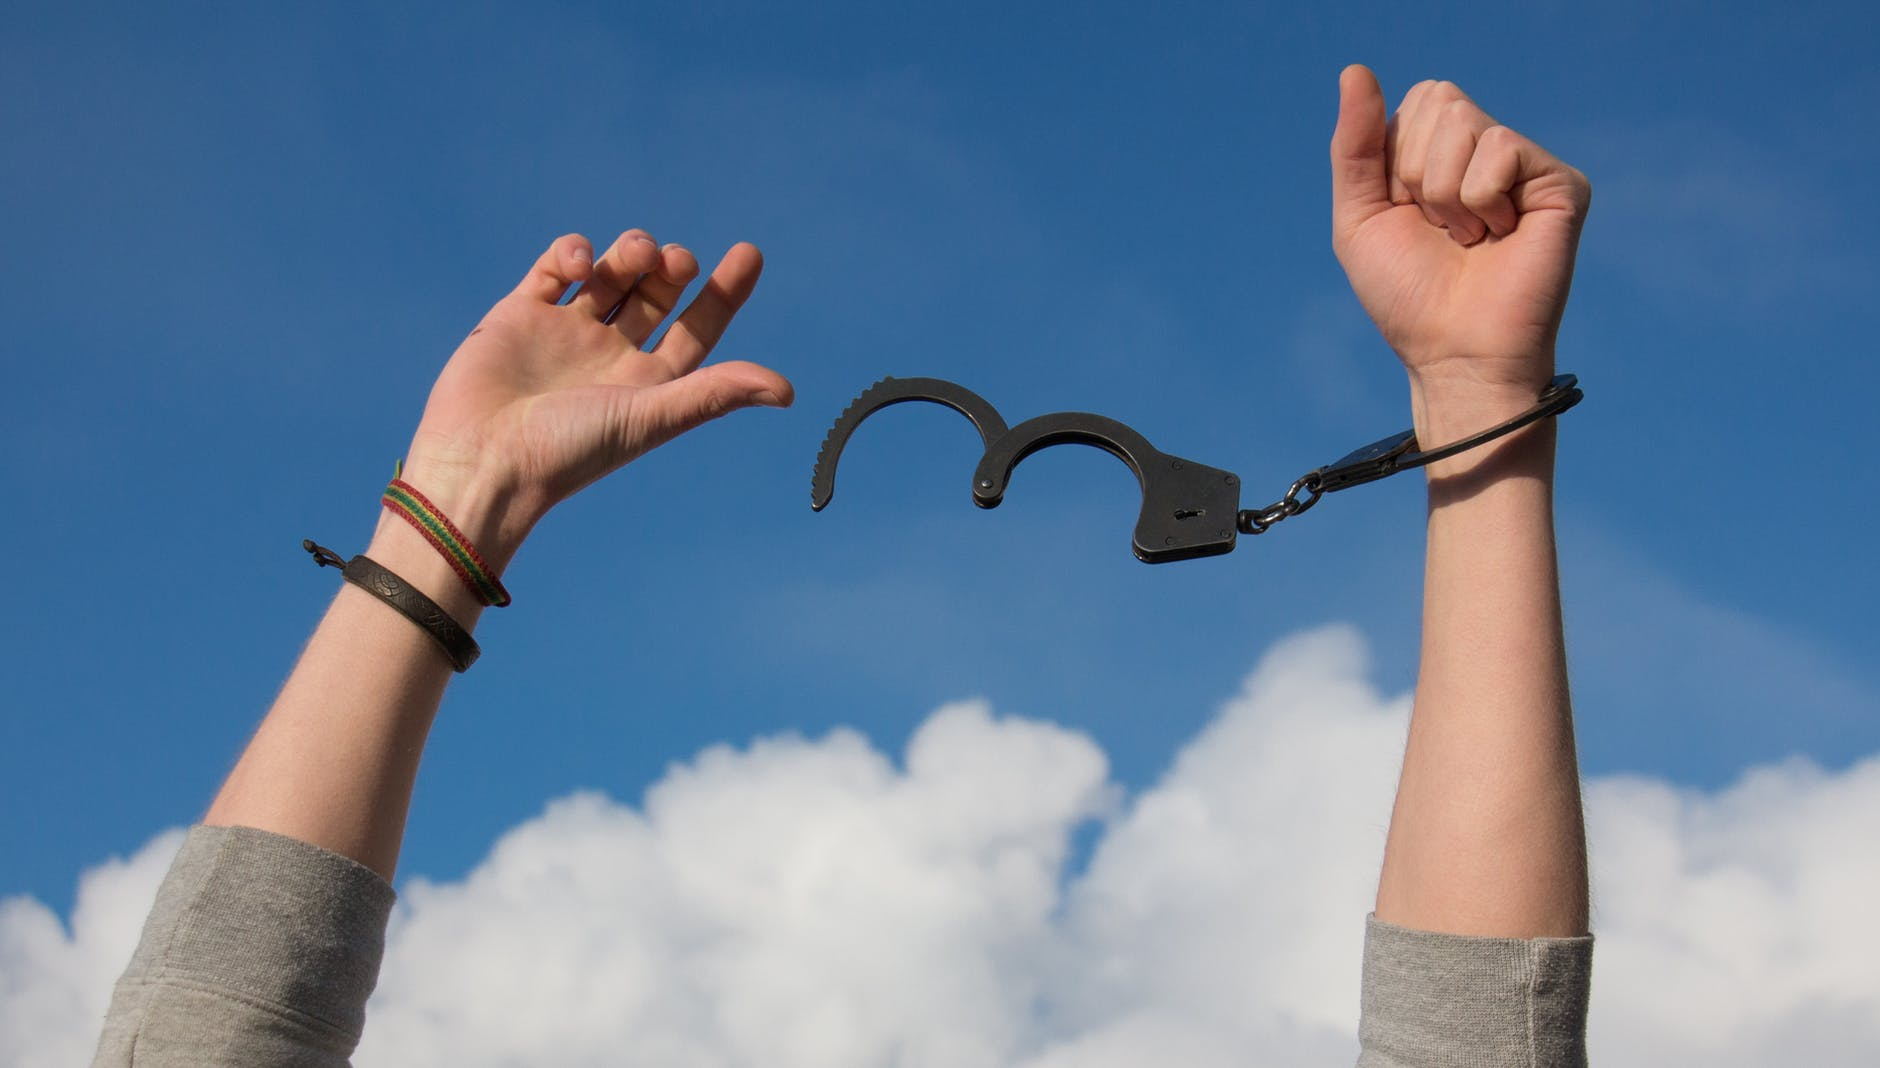 a mans arms break free of black handcuffs against a blue sky with fluffy white clouds - how to say no assertively - life coach - awakened living